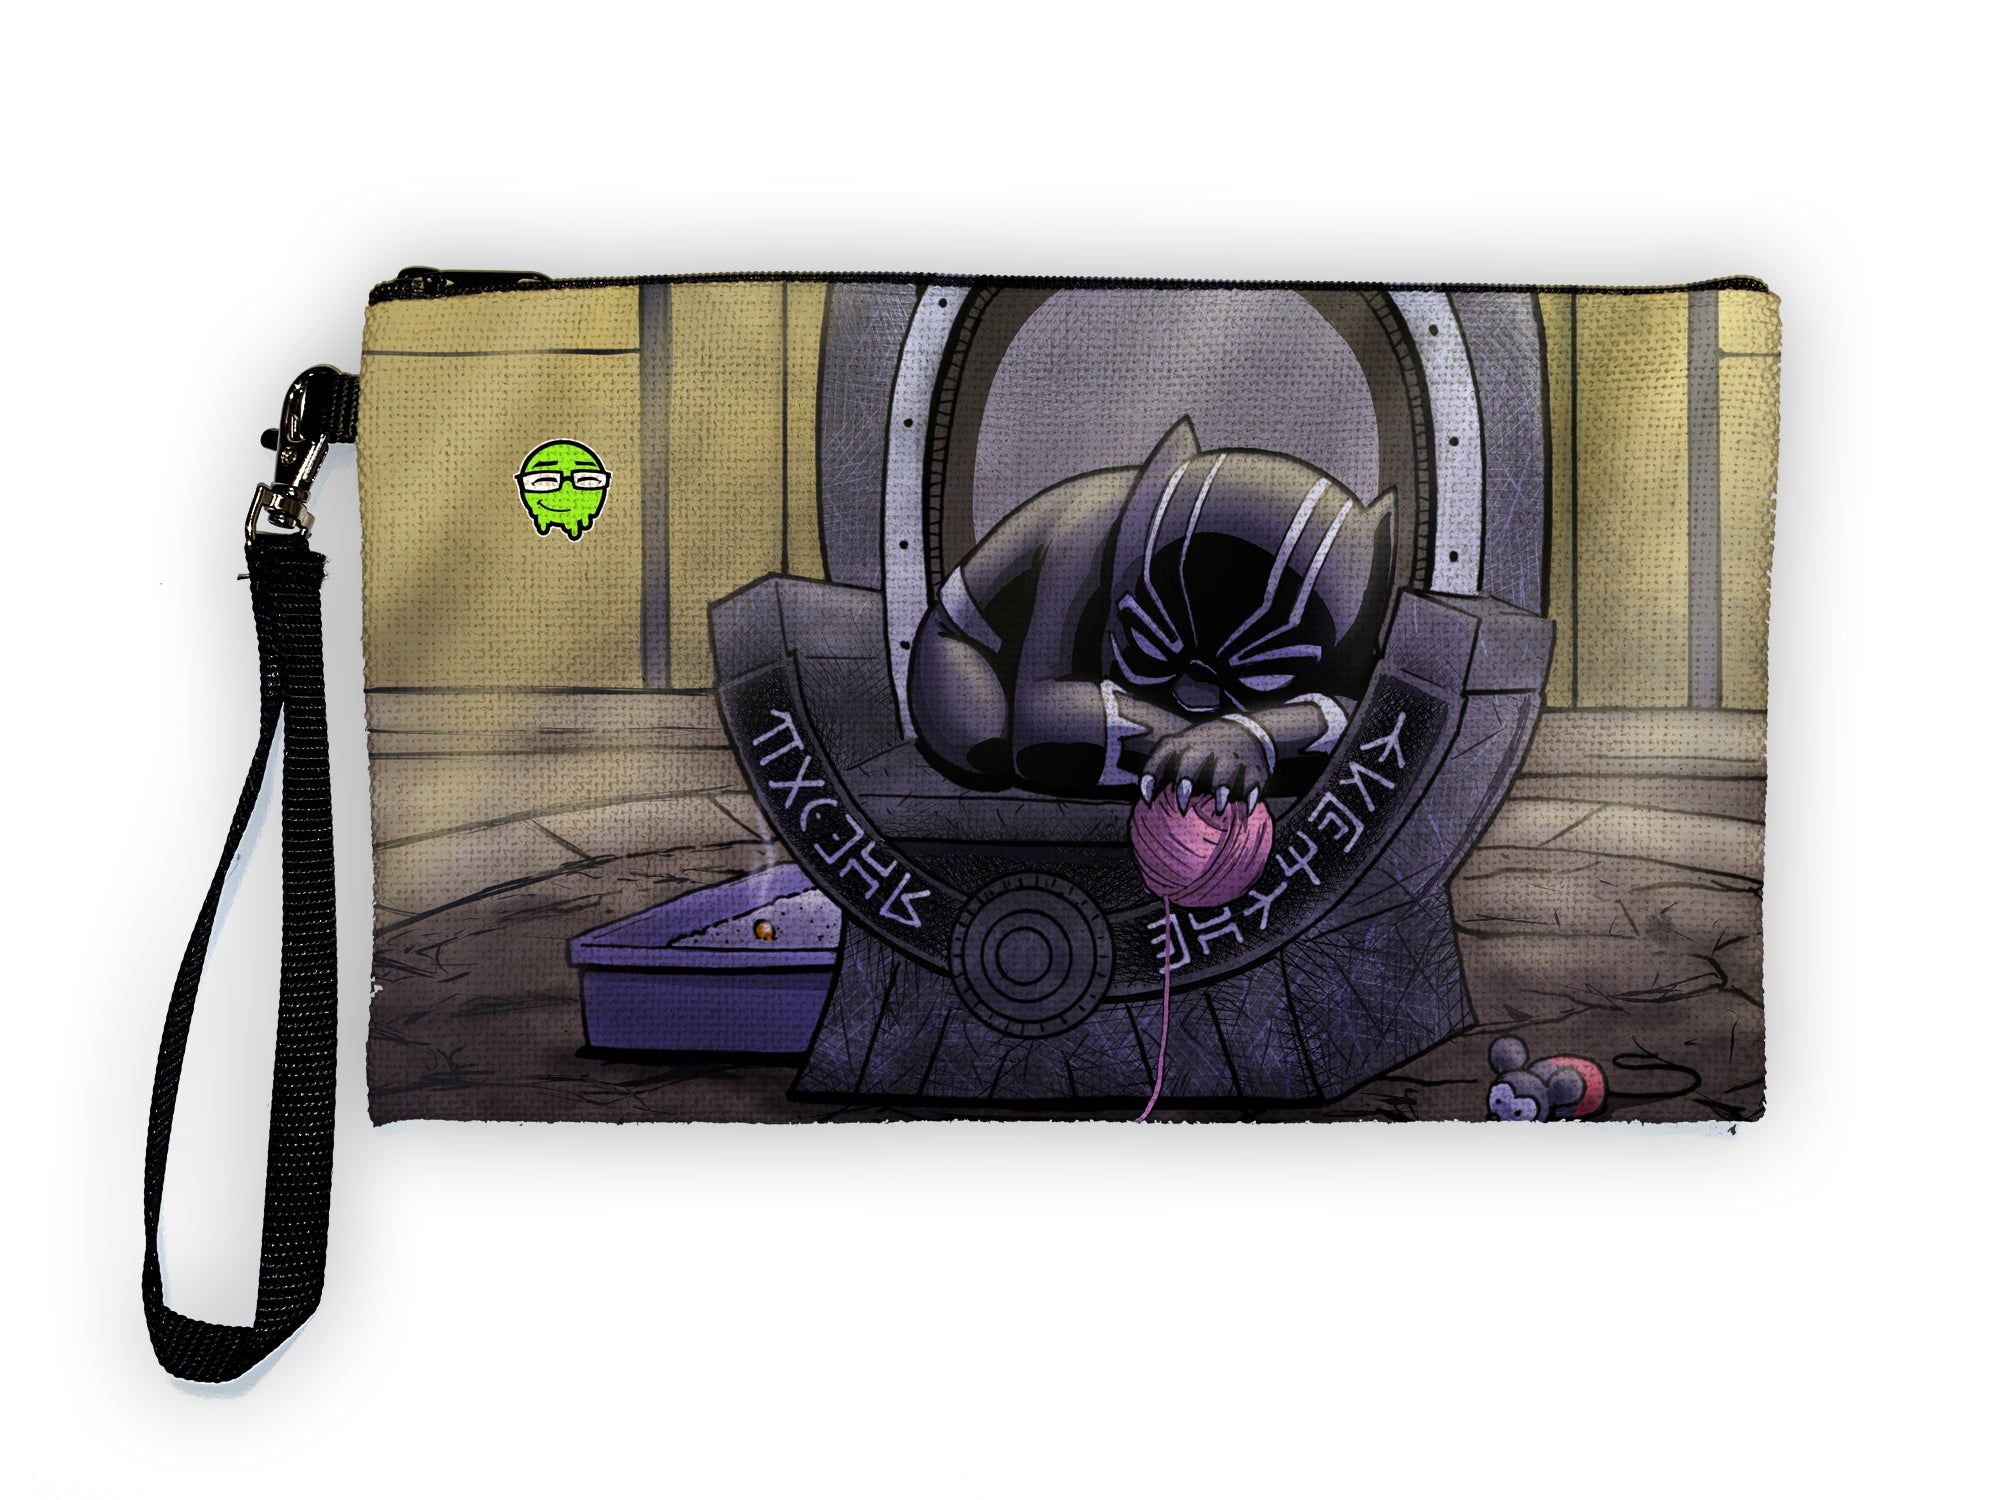 Black Panther - Meents Illustrated Authentic Large Pencil/Device Bag